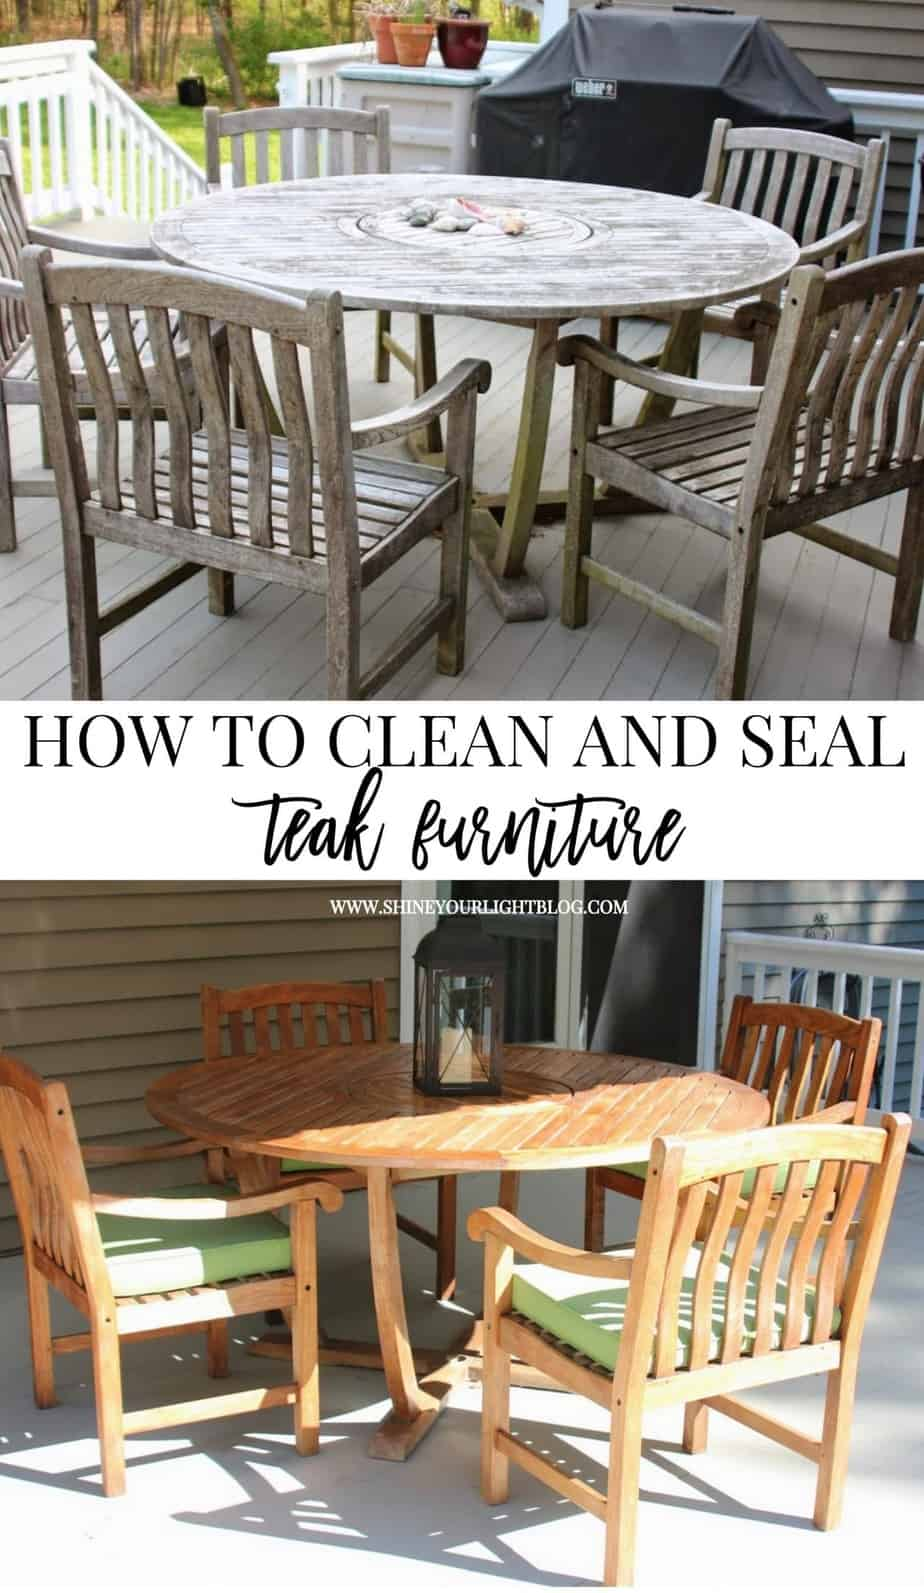 How to clean and seal outdoor teak furniture and bring it back to life.